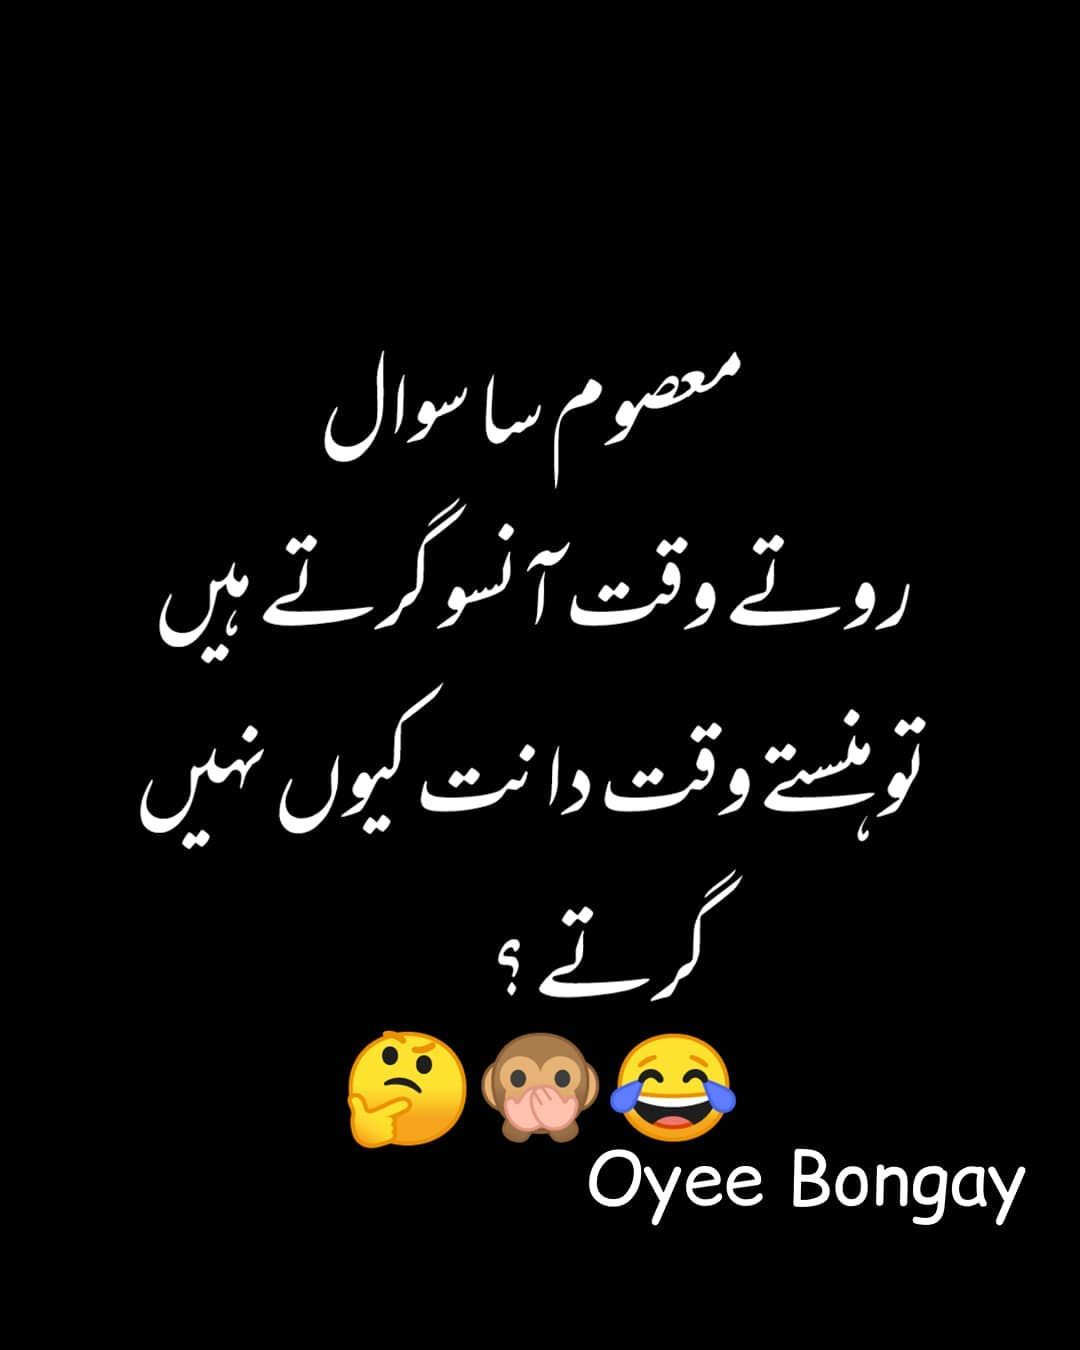 Image May Contain Text Cute Funny Quotes Fun Quotes Funny Urdu Funny Quotes